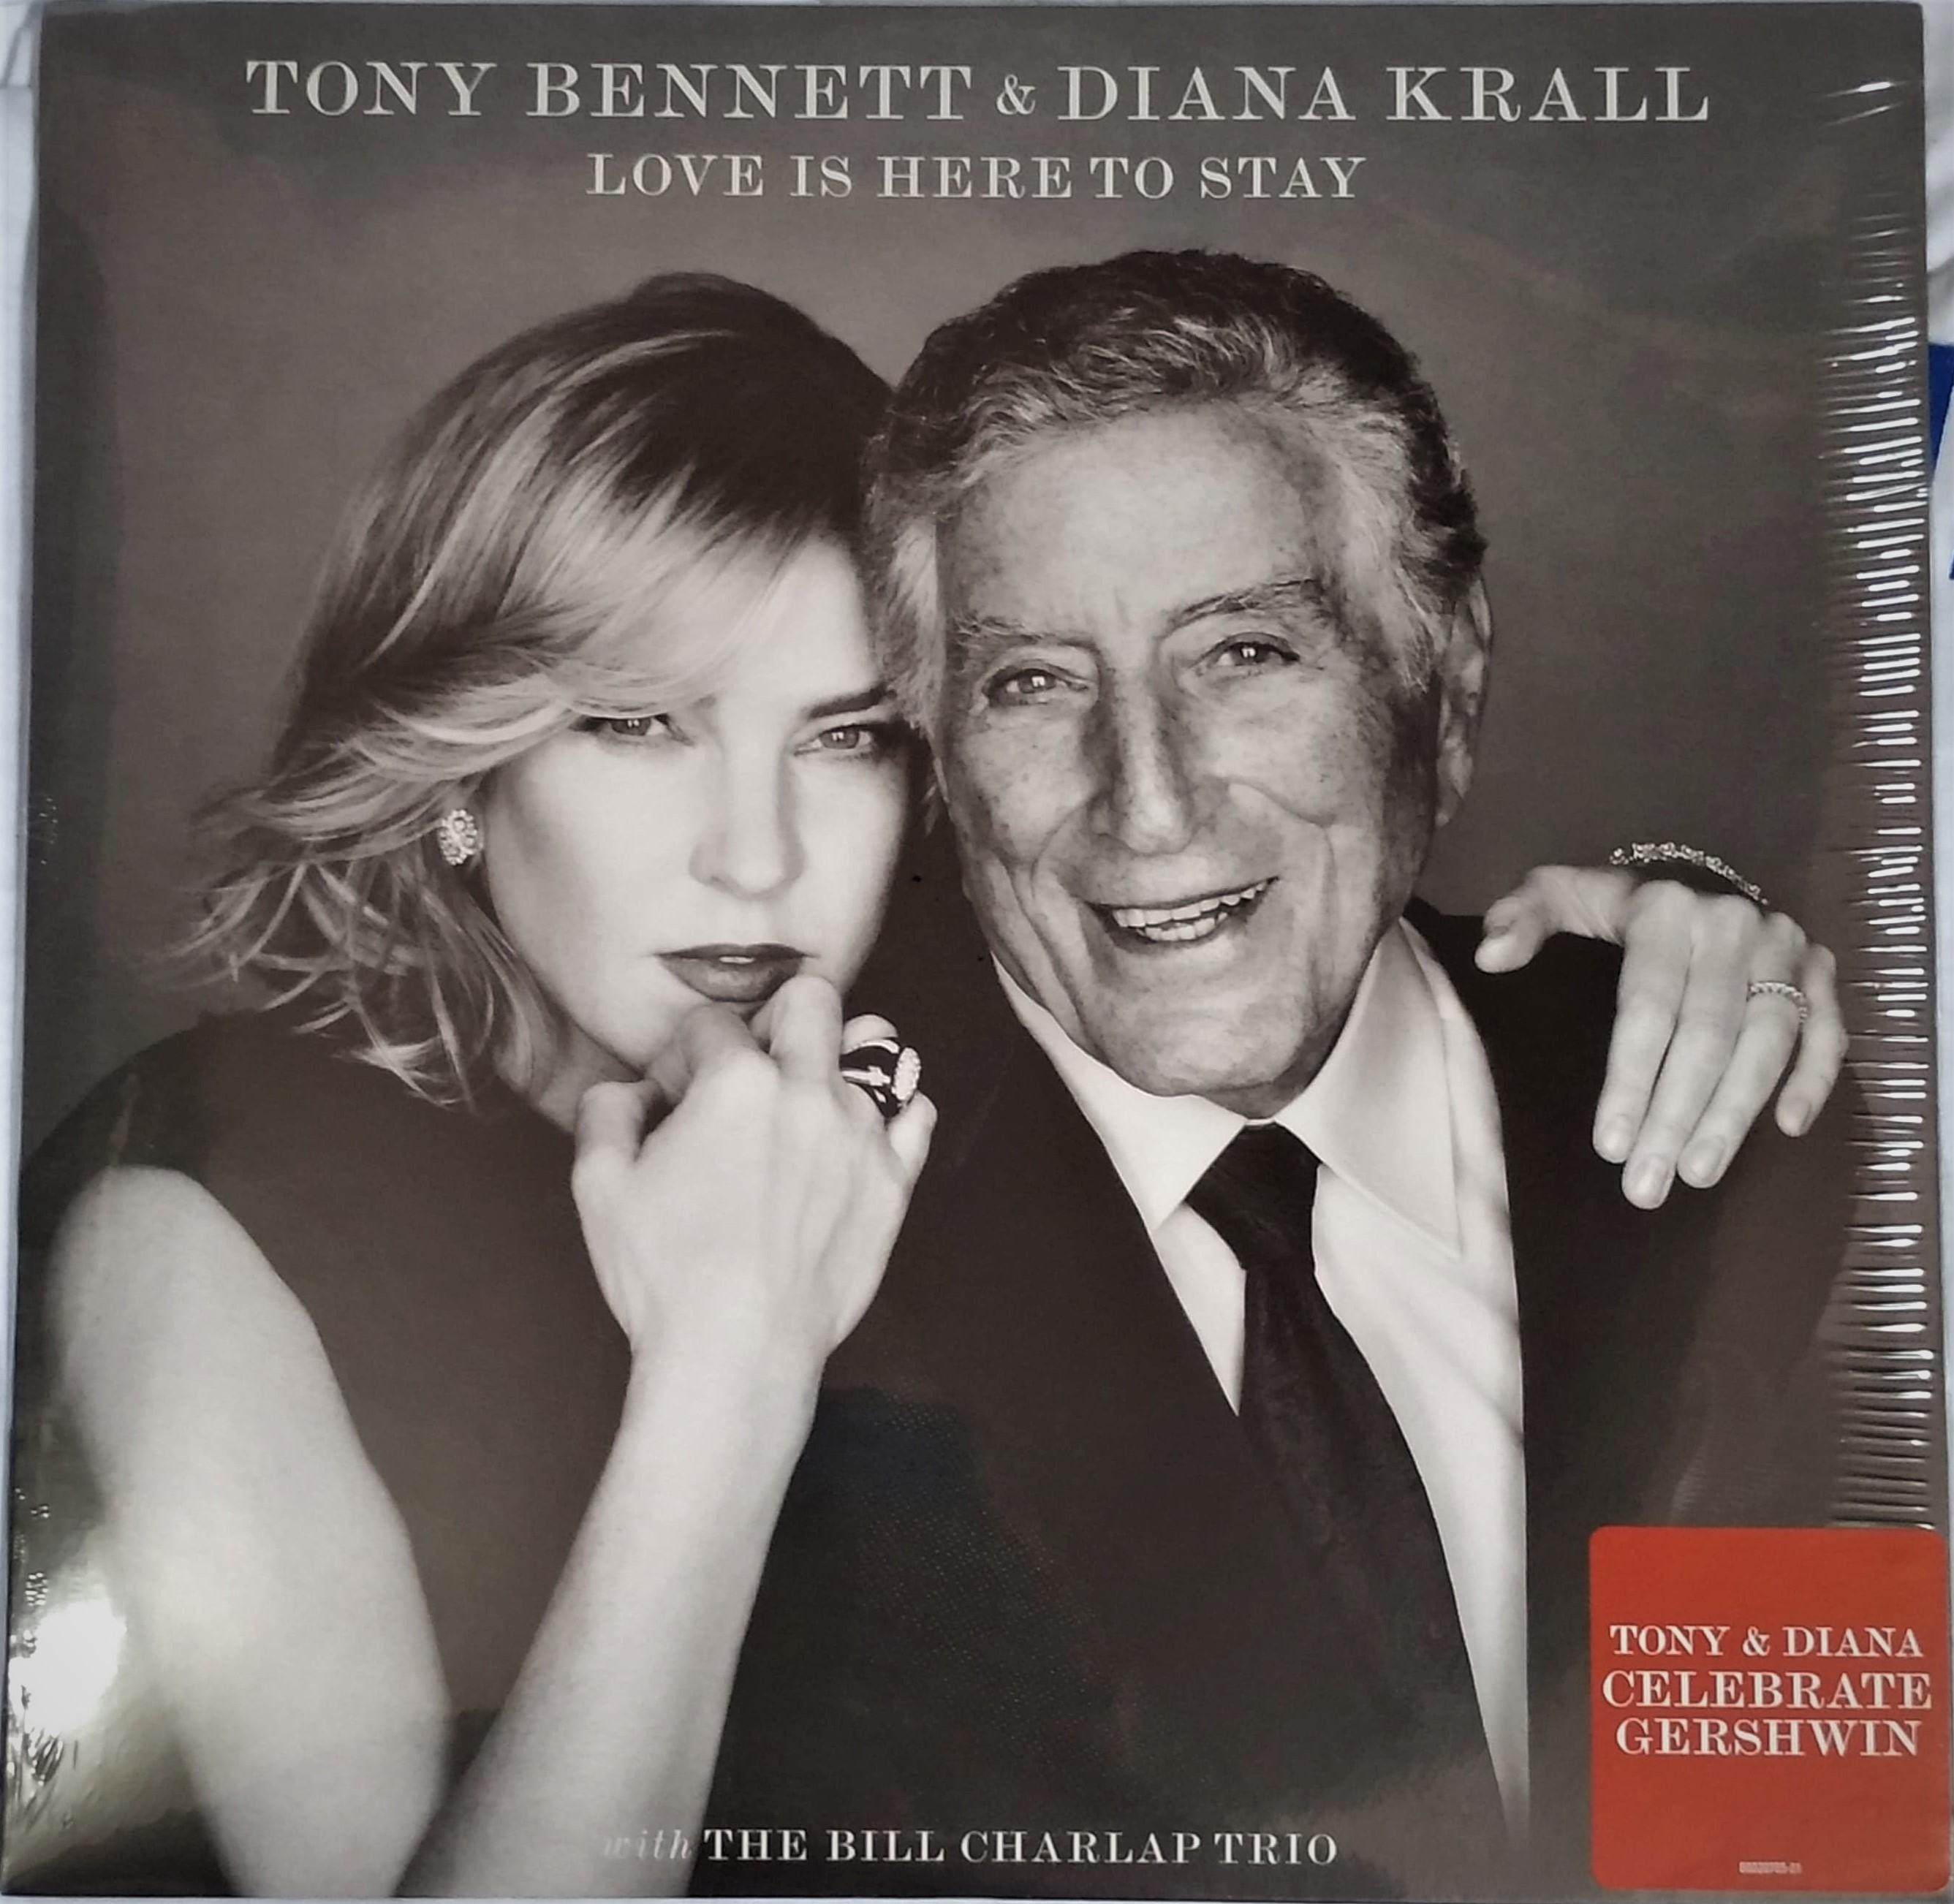 Love Is Here To Stay By Tony Bennett / Diana Krall Vinyl Lp By Hobbies N Stuff.